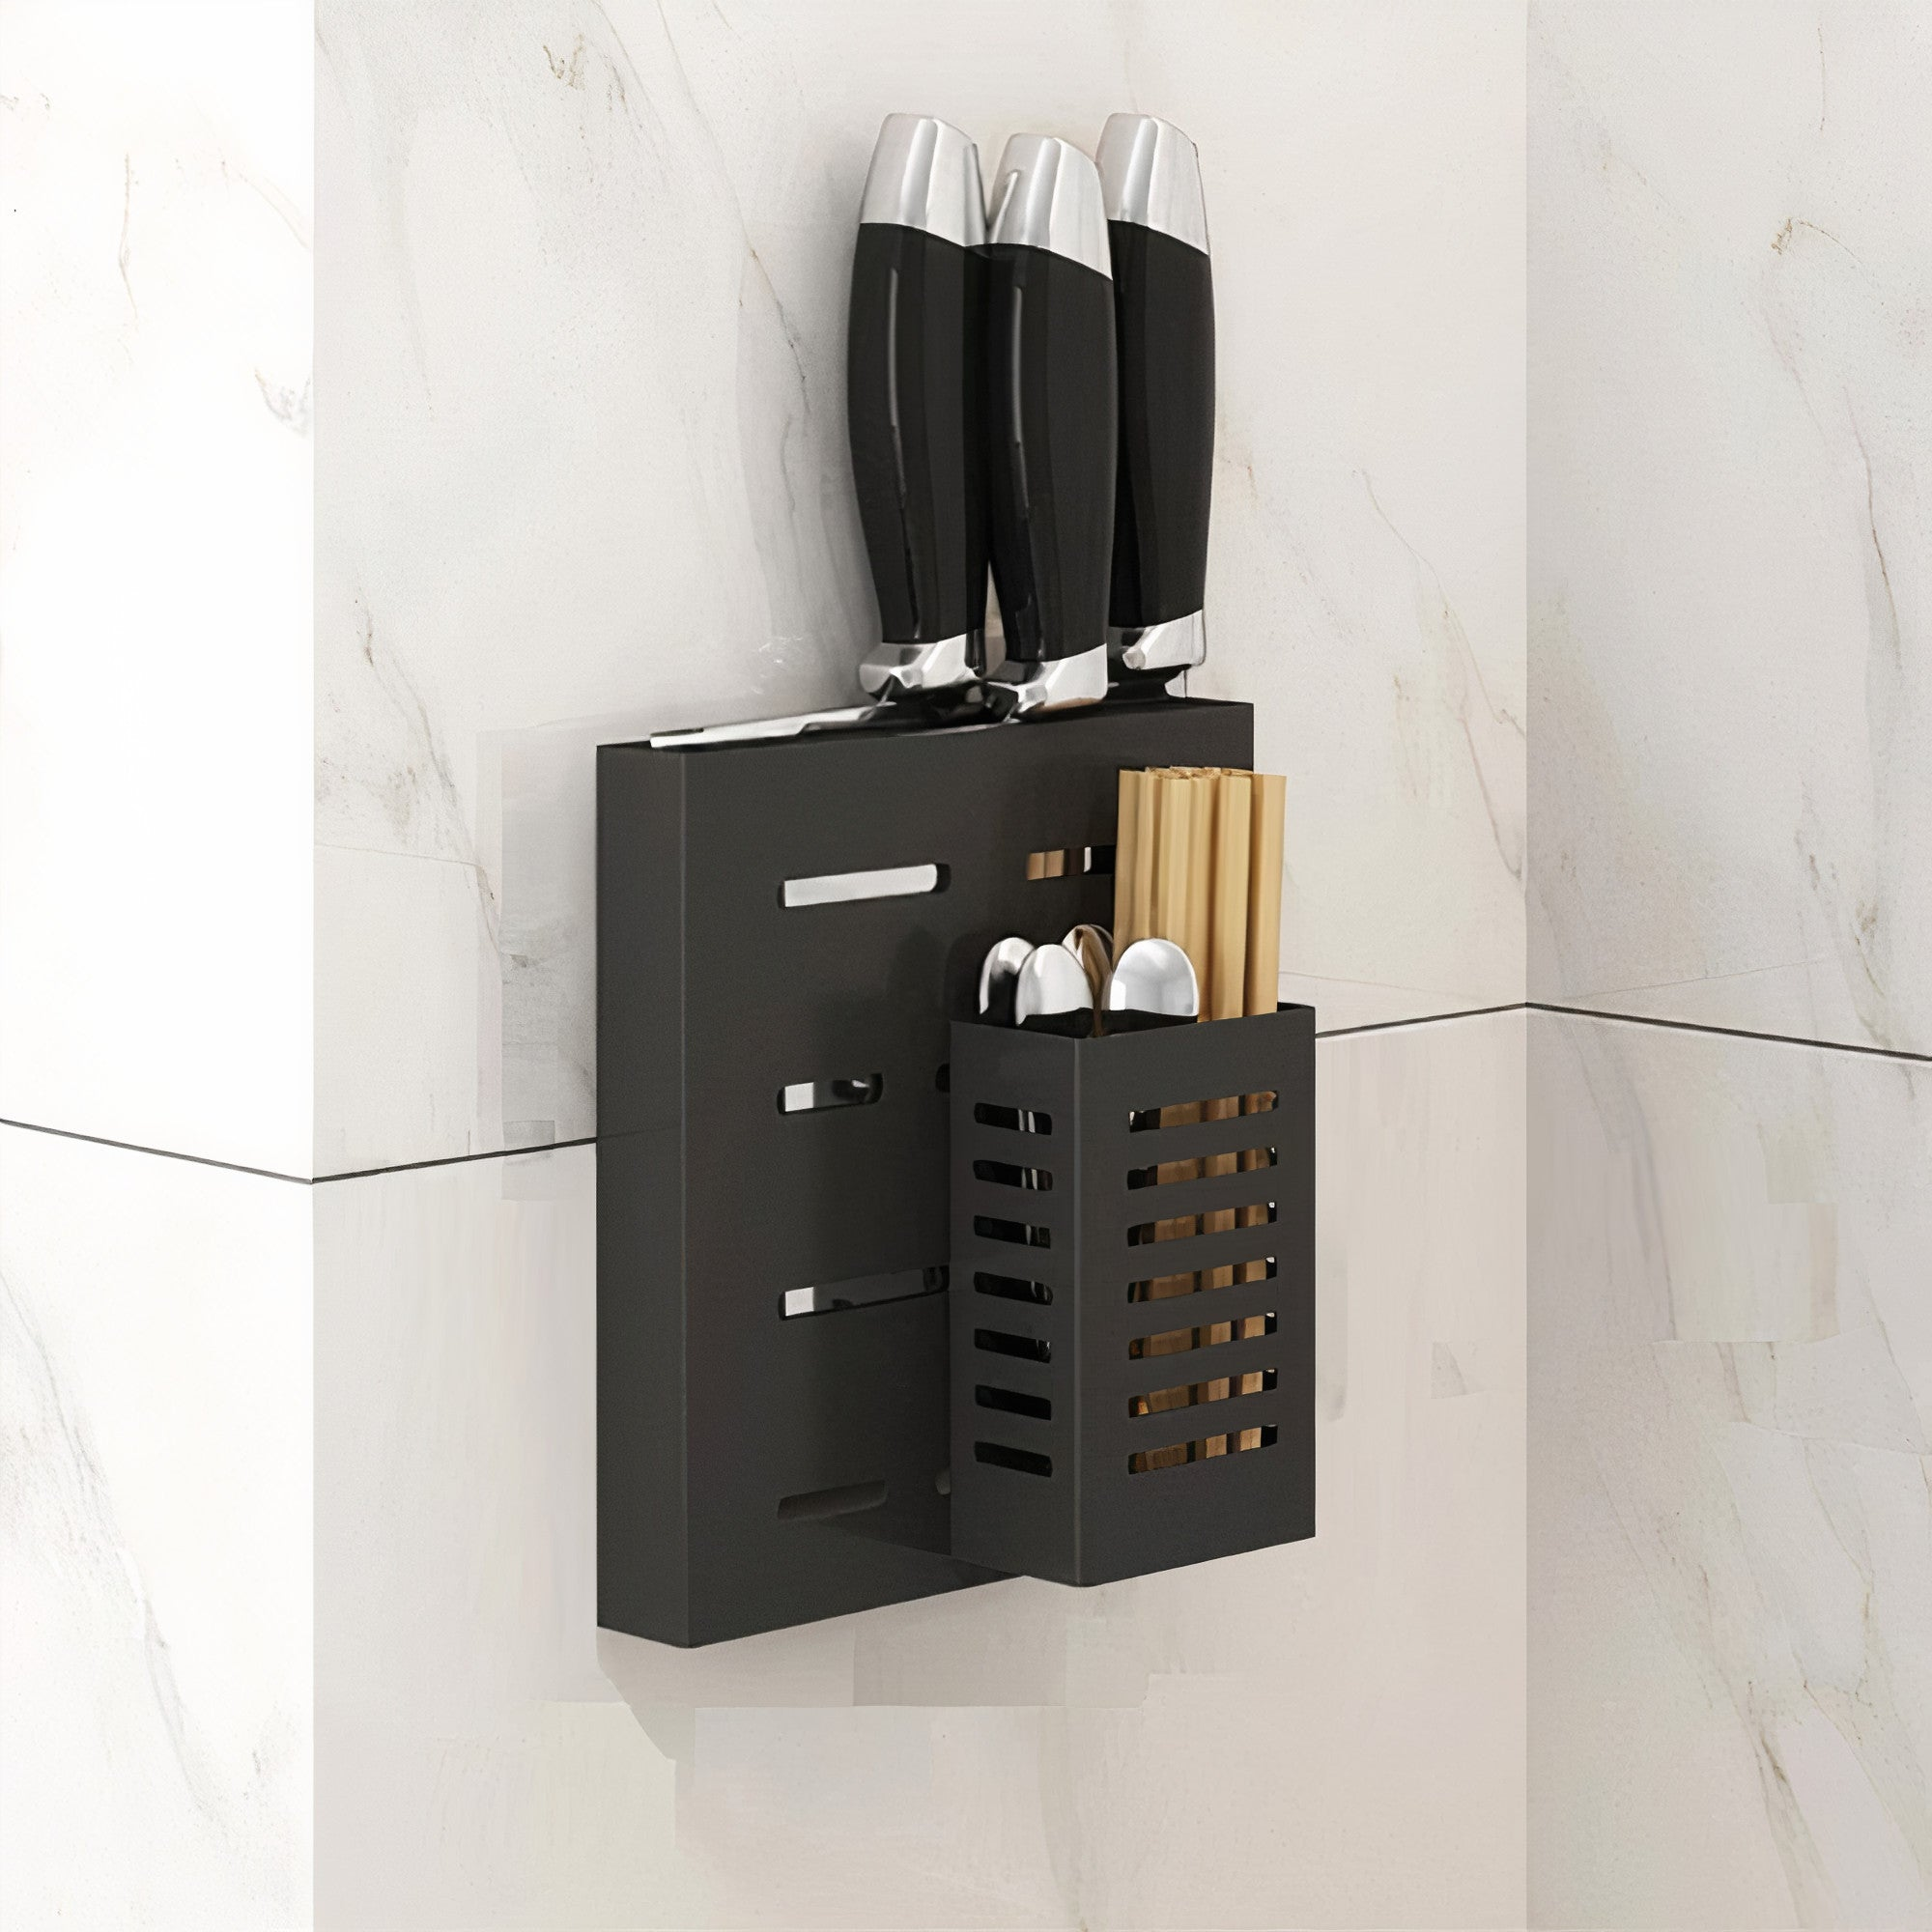 Wall Mounted Knife & Cutleries Holder